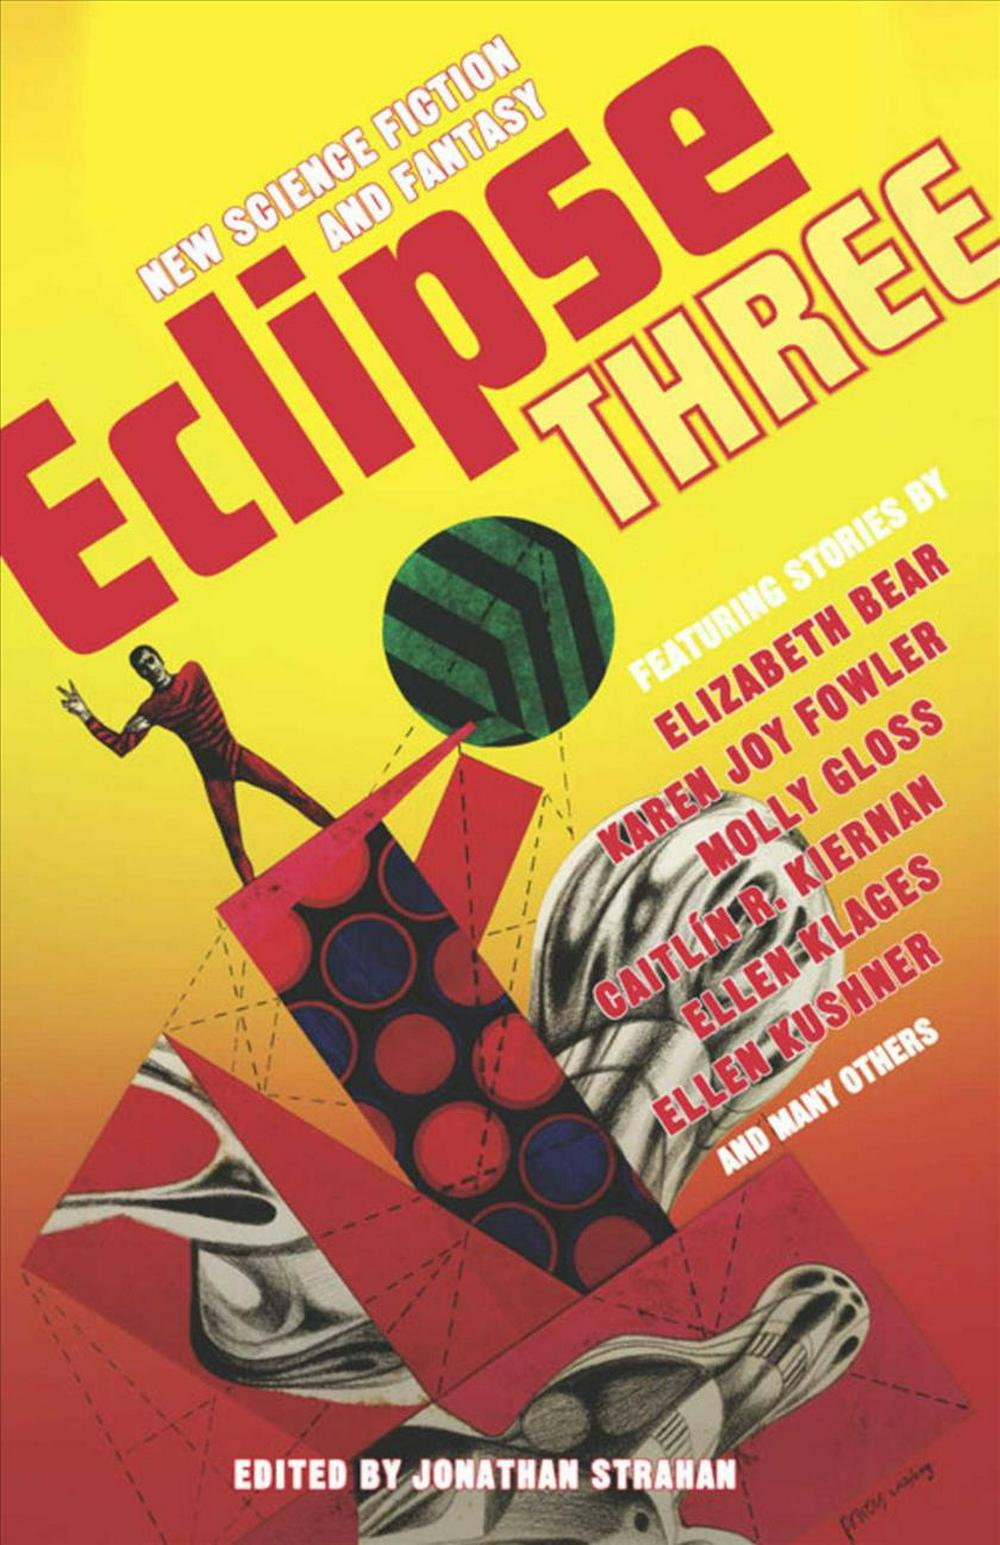 Eclipse: New Science Fiction and Fantasy v. 3